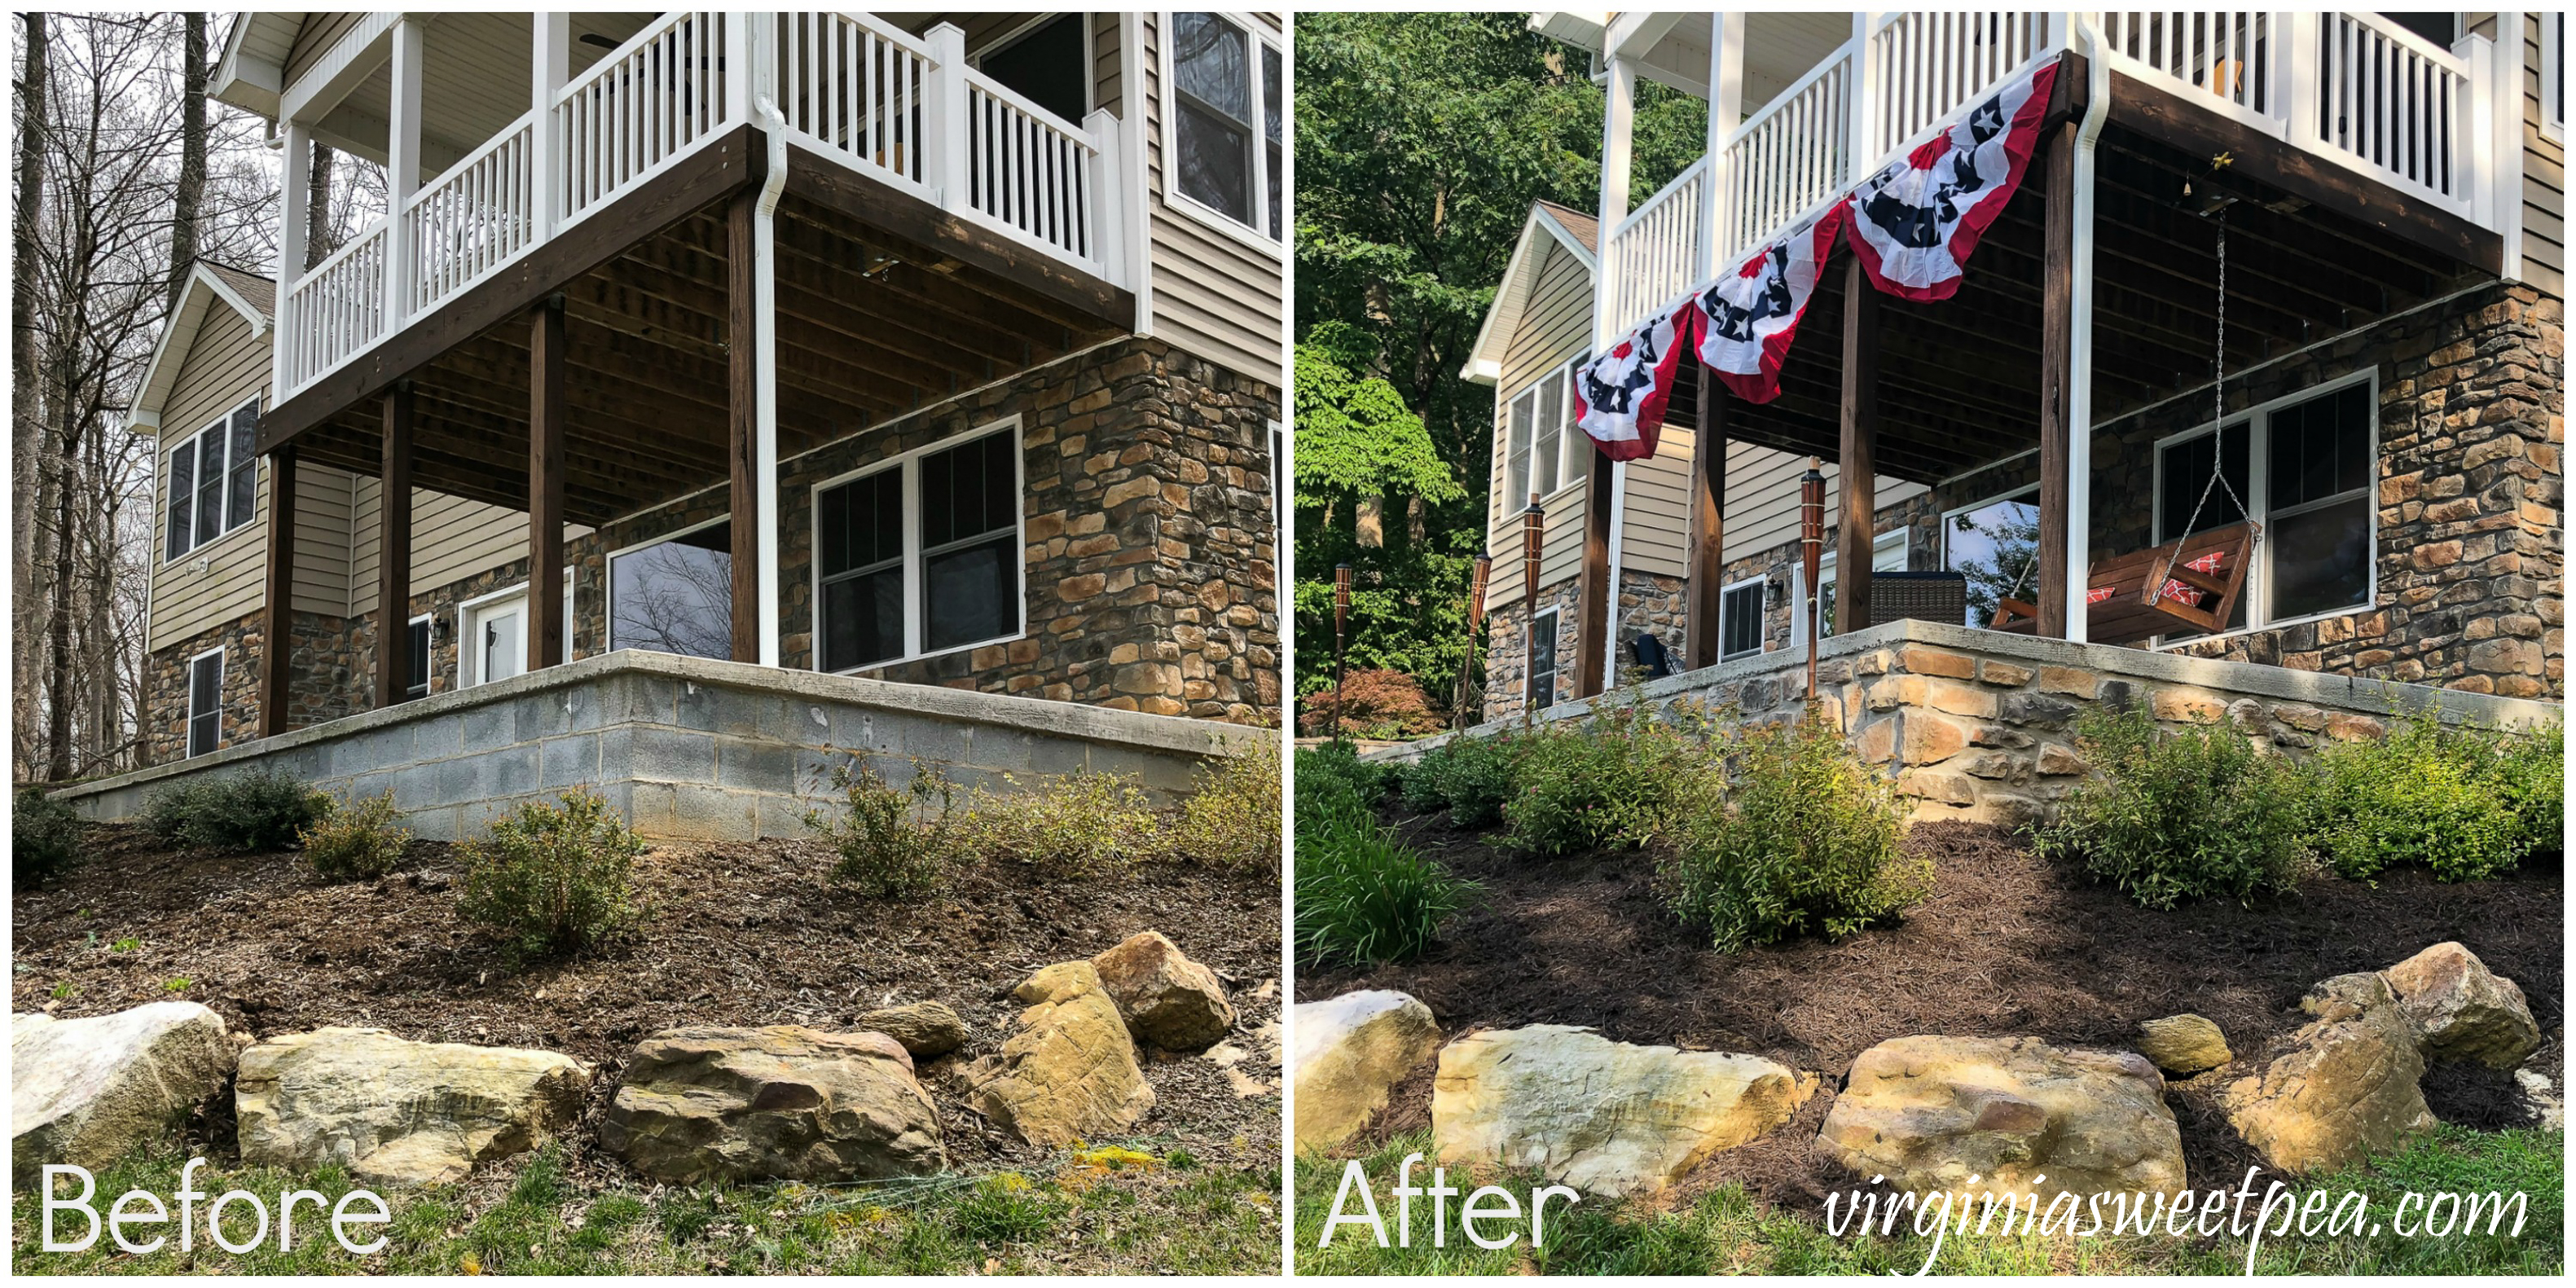 Before and After of adding stone veneer to a patio wall